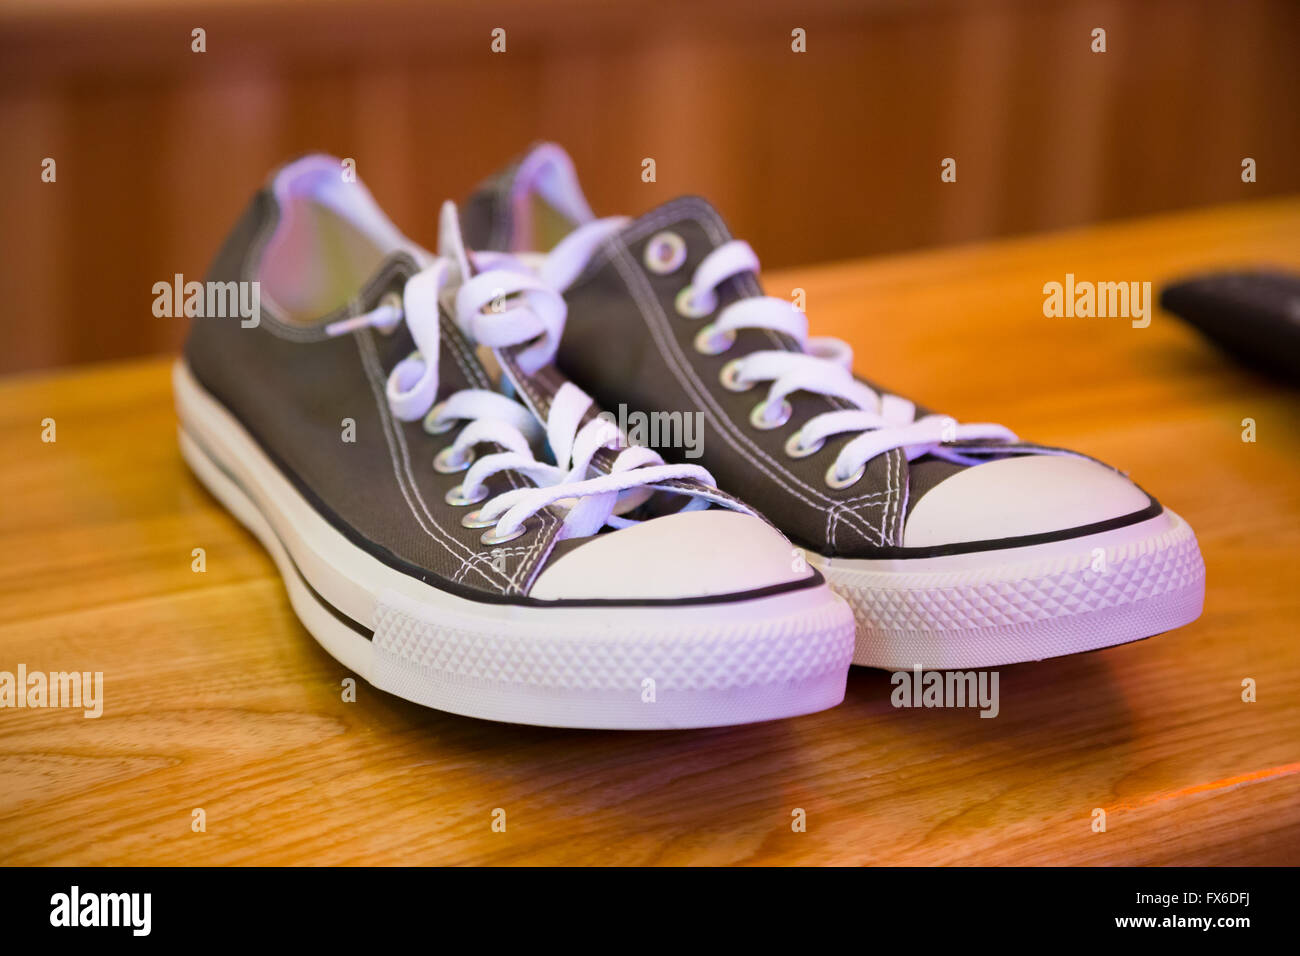 c0732eea3edf Grey shoes in a converse style to be worn by the groom on his wedding day.